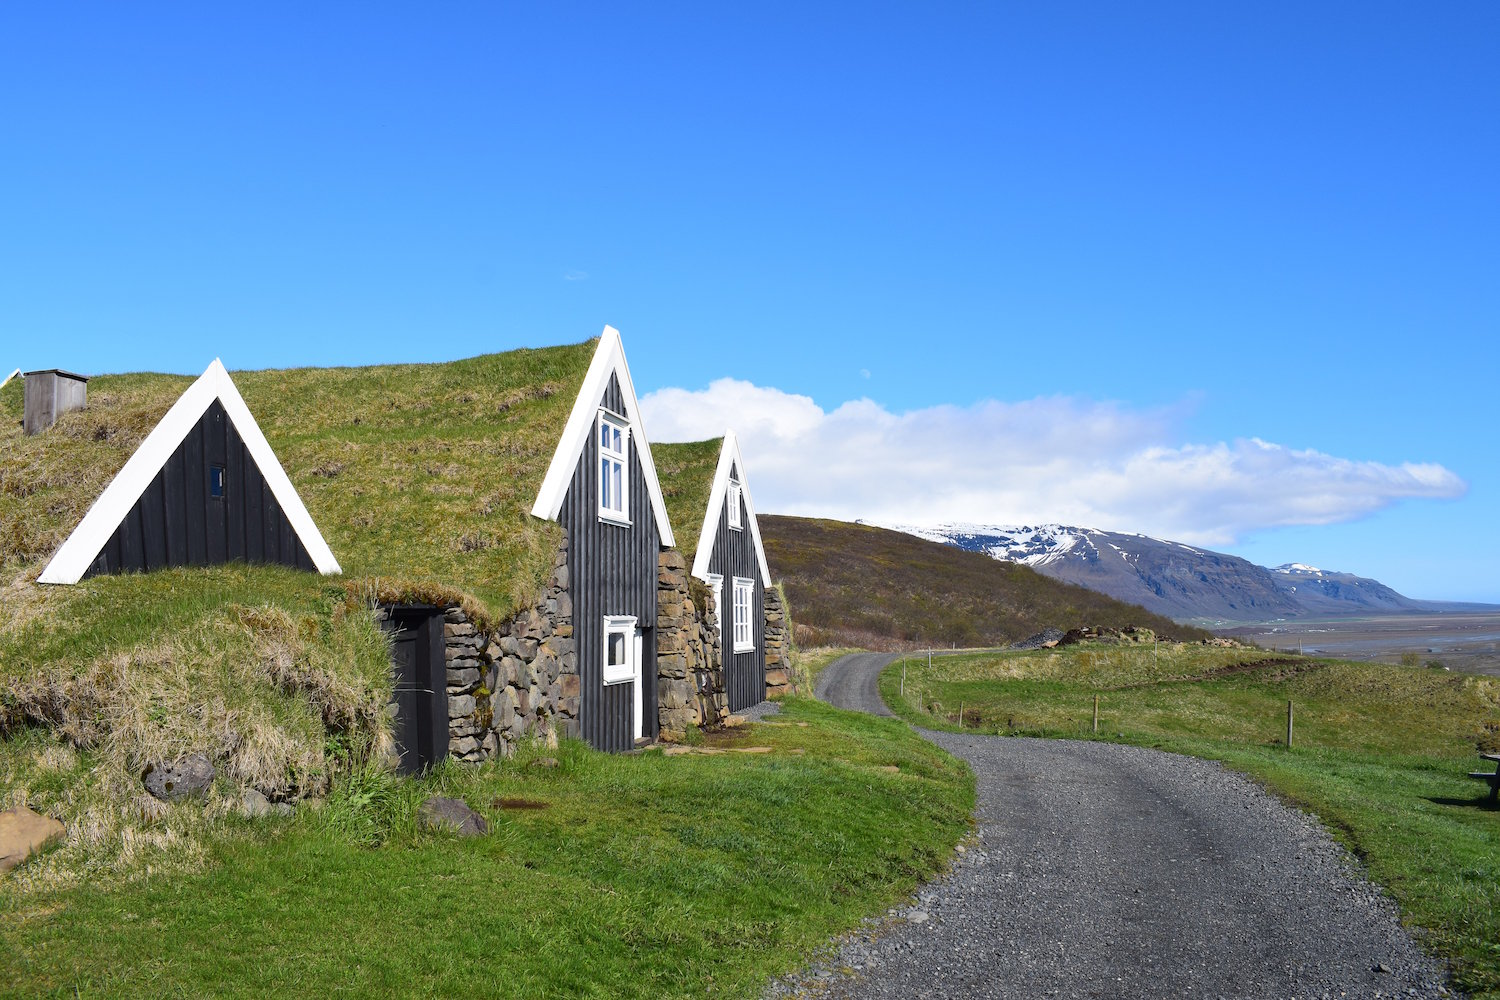 Turf-roofed houses at Sel